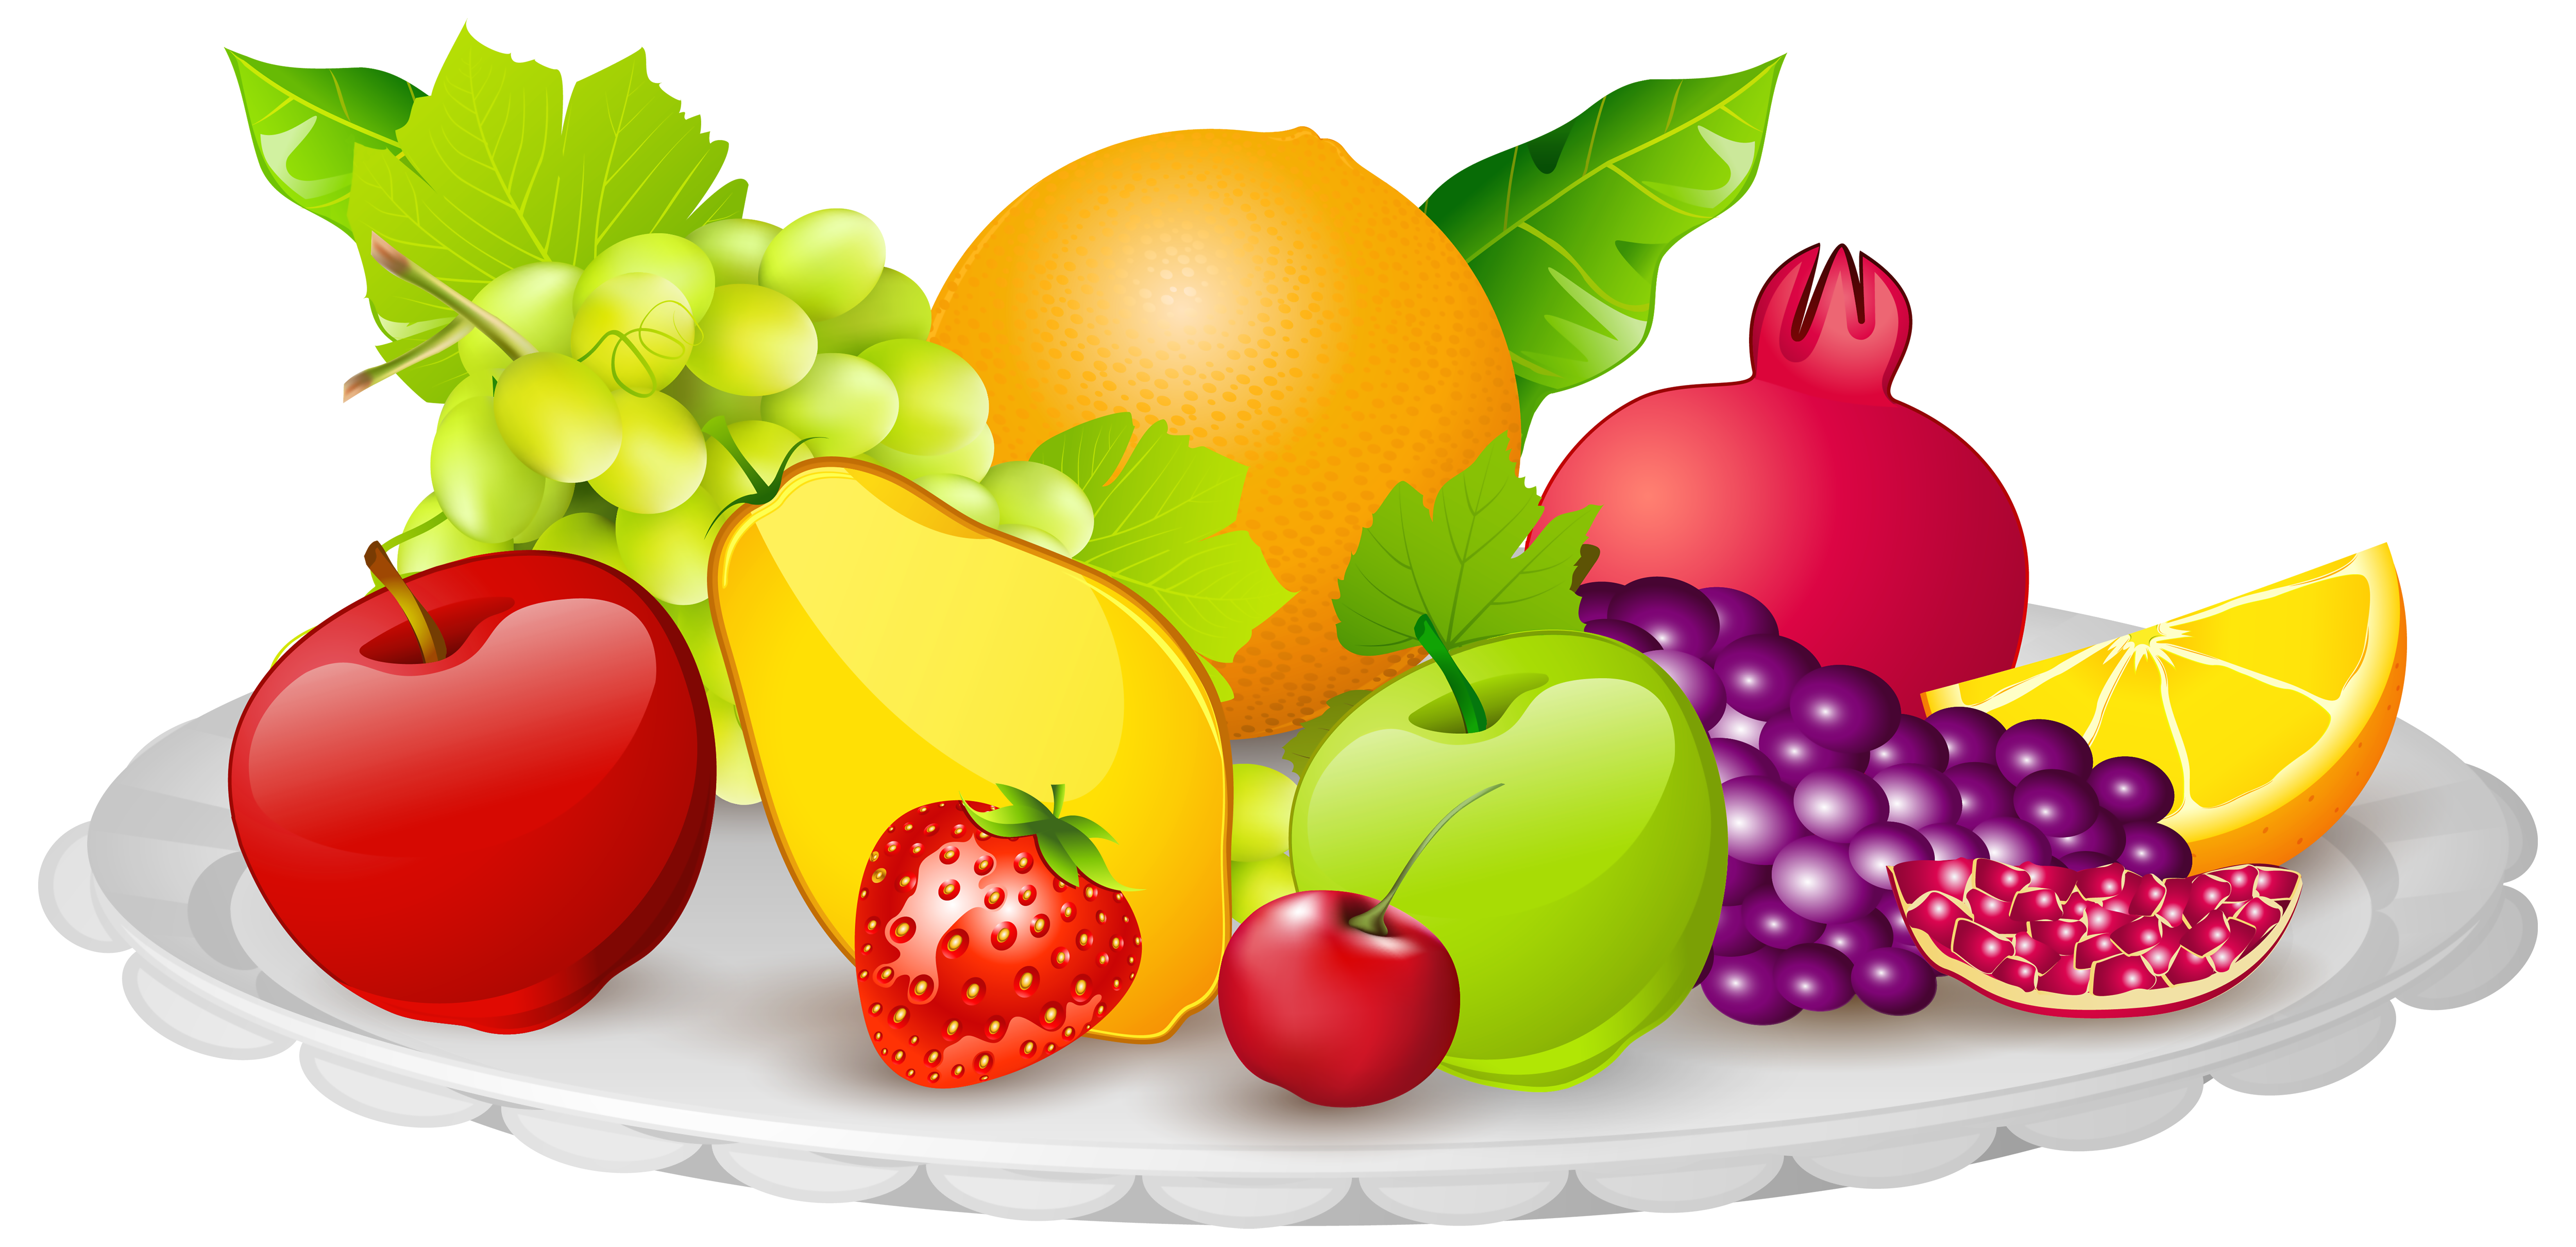 clip library stock Plate with png image. Fruits clipart.